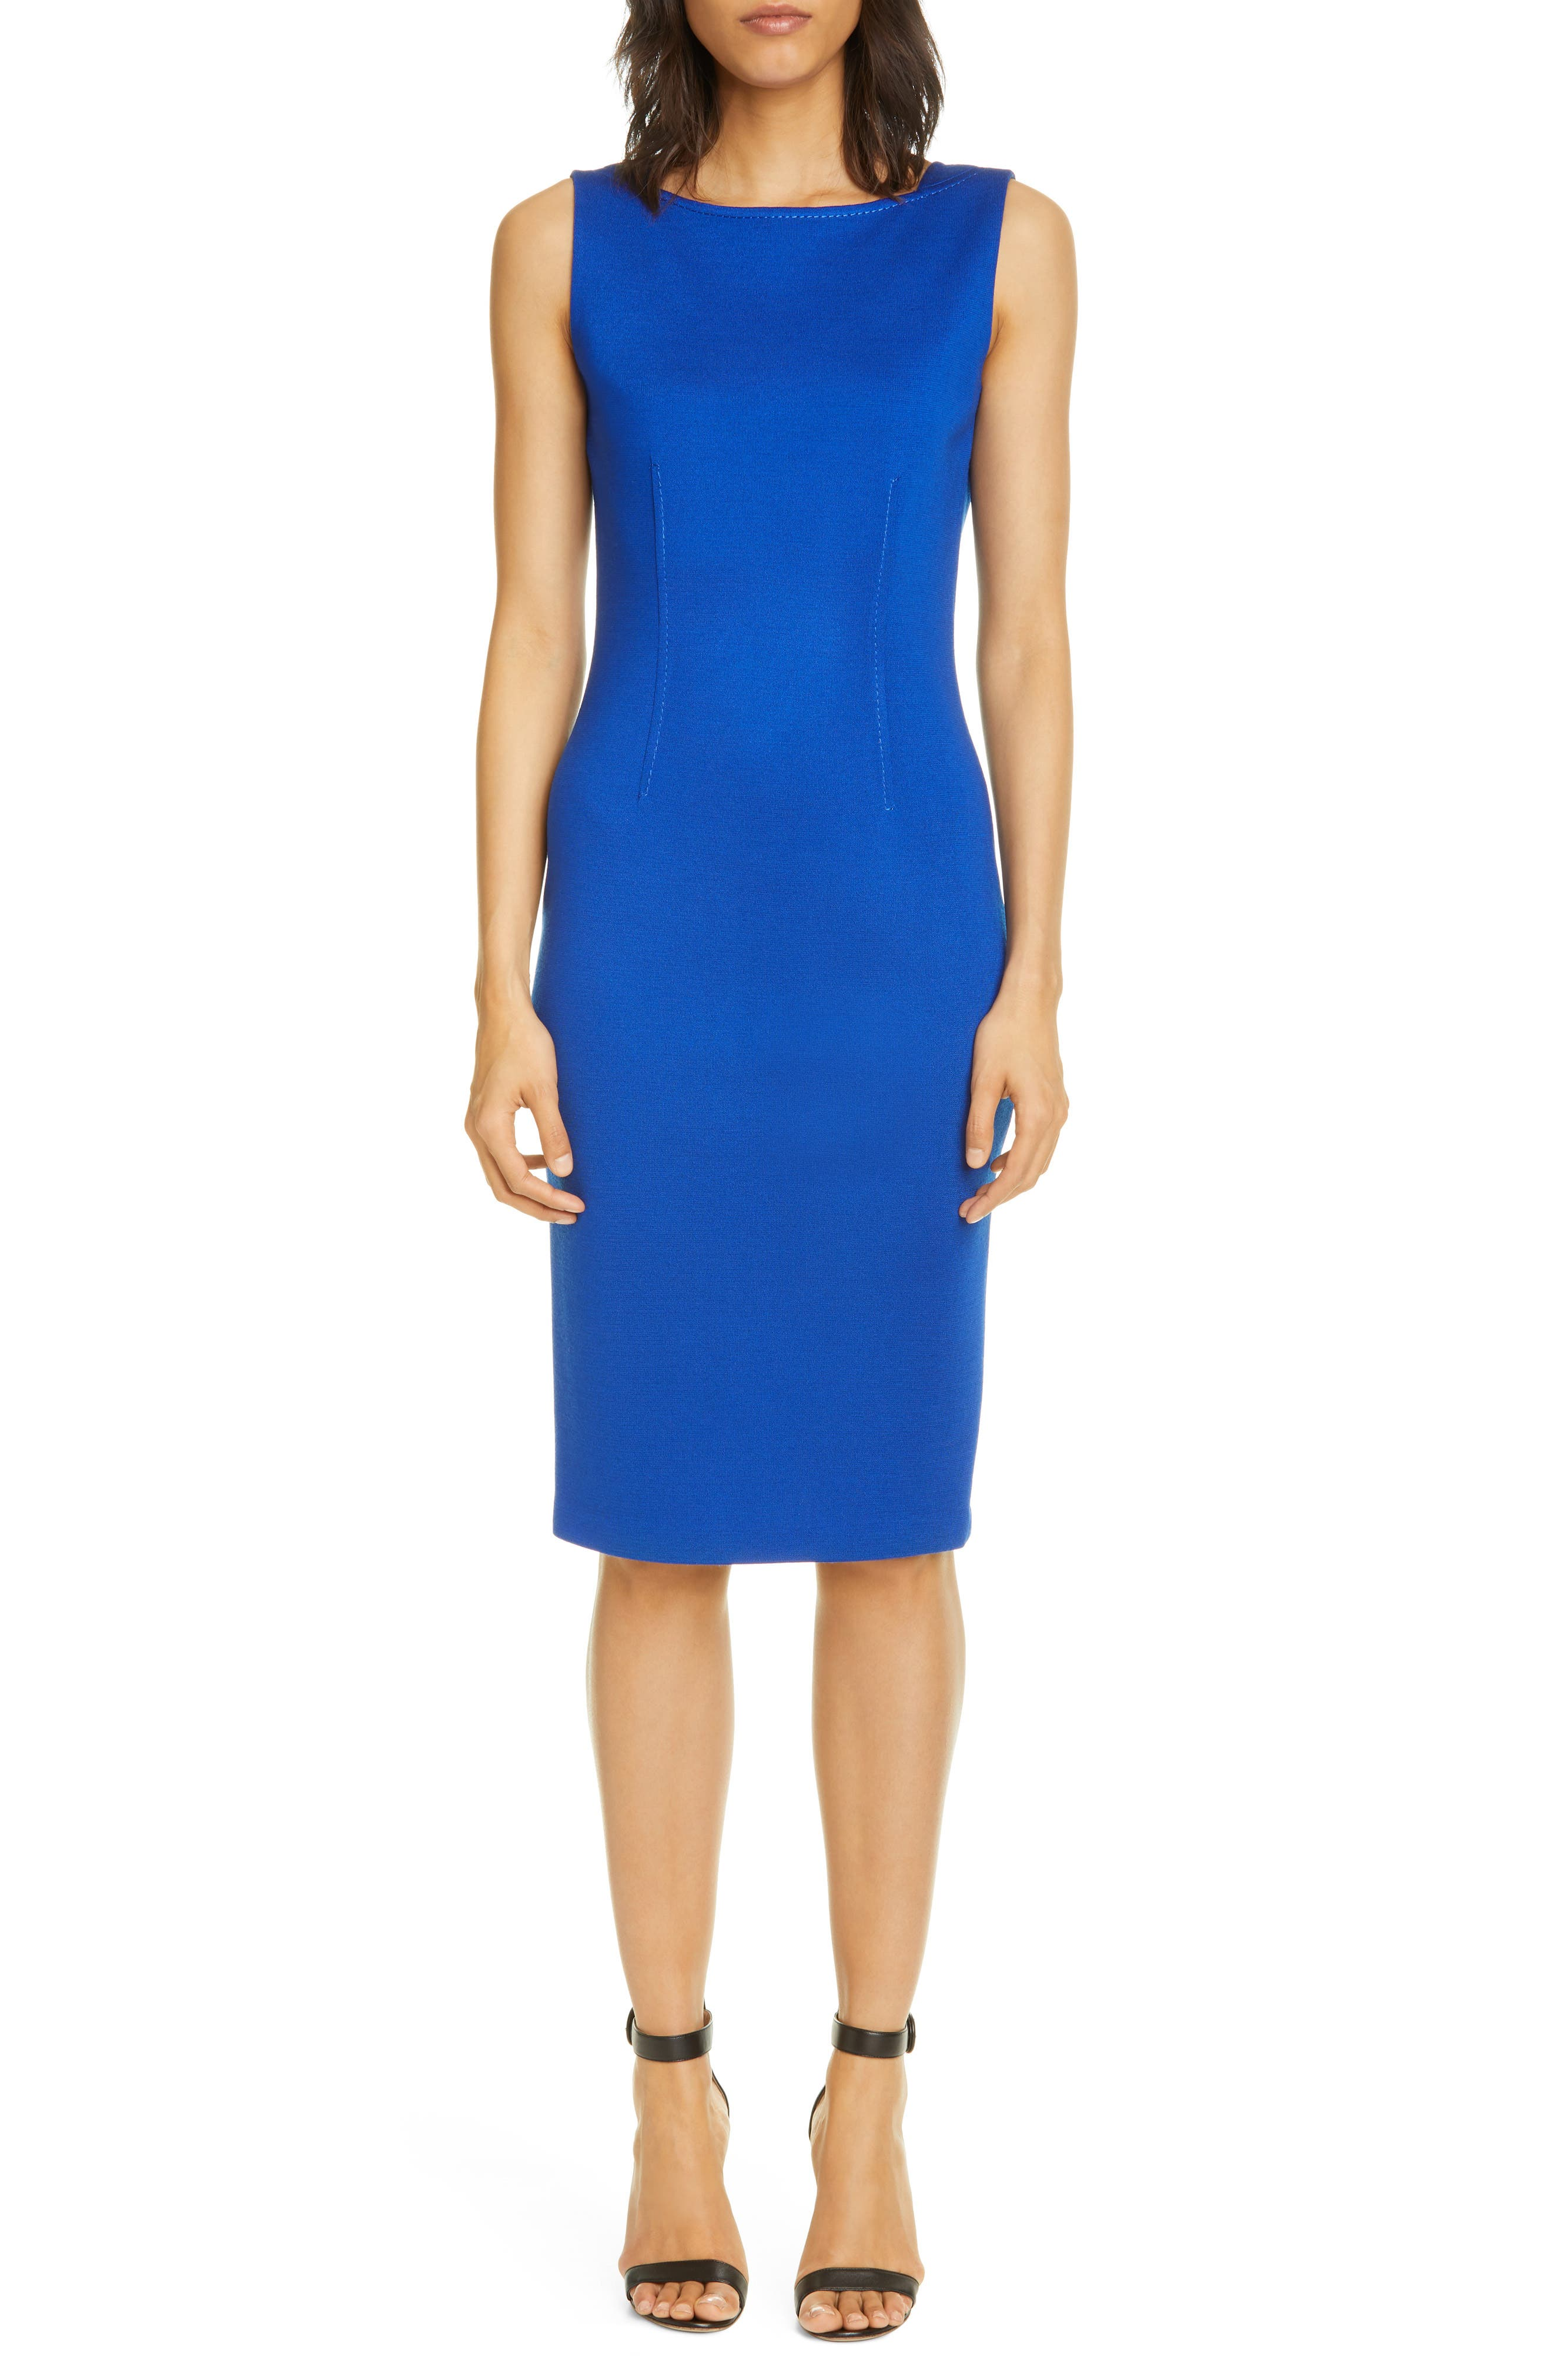 Topstitched darts nip in the waist and add subtle detail to this sleeveless sheath made from a dense, shape-retaining knit created using custom-dyed yarns. Style Name: St. John Collection Milano Knit Wool Blend Sheath Dress. Style Number: 6045021. Available in stores.